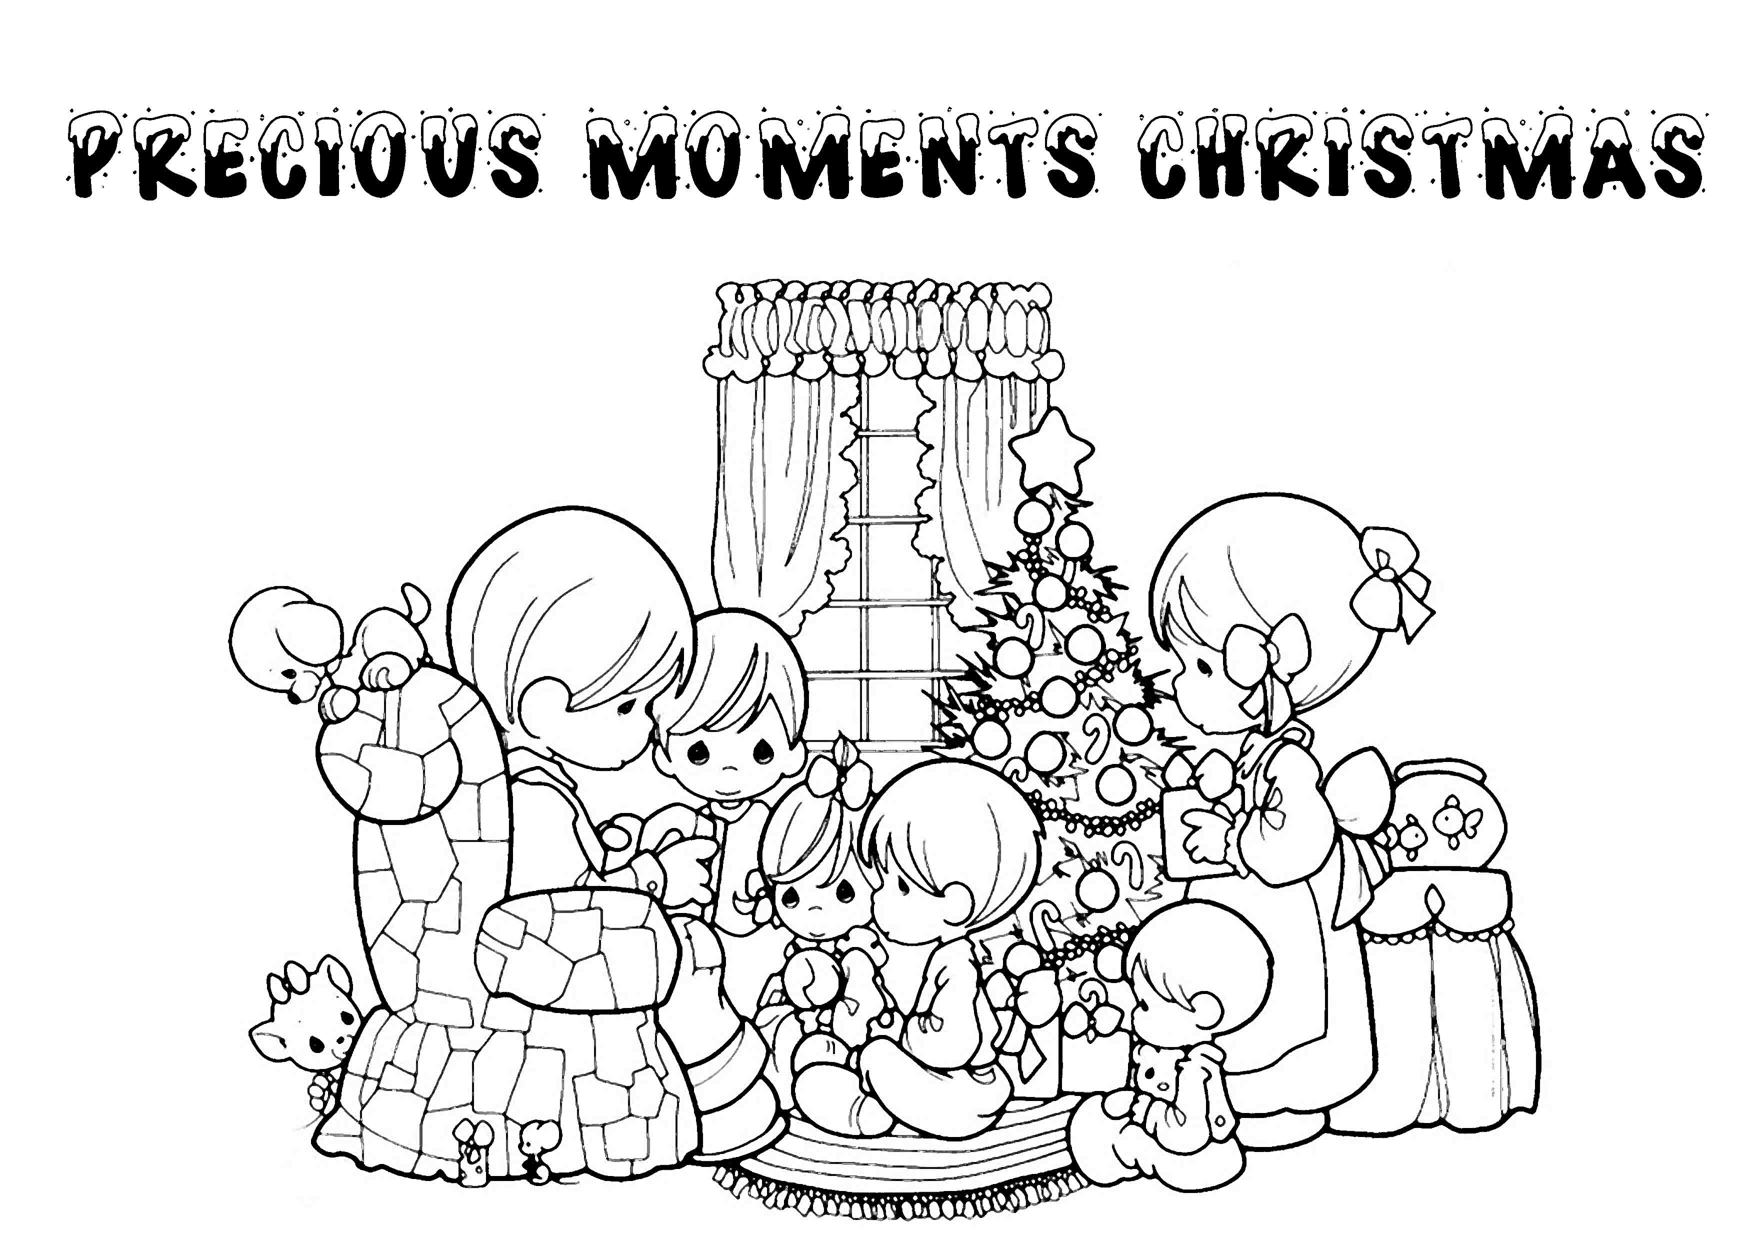 Precious Moments Christmas Coloring Pages Printable